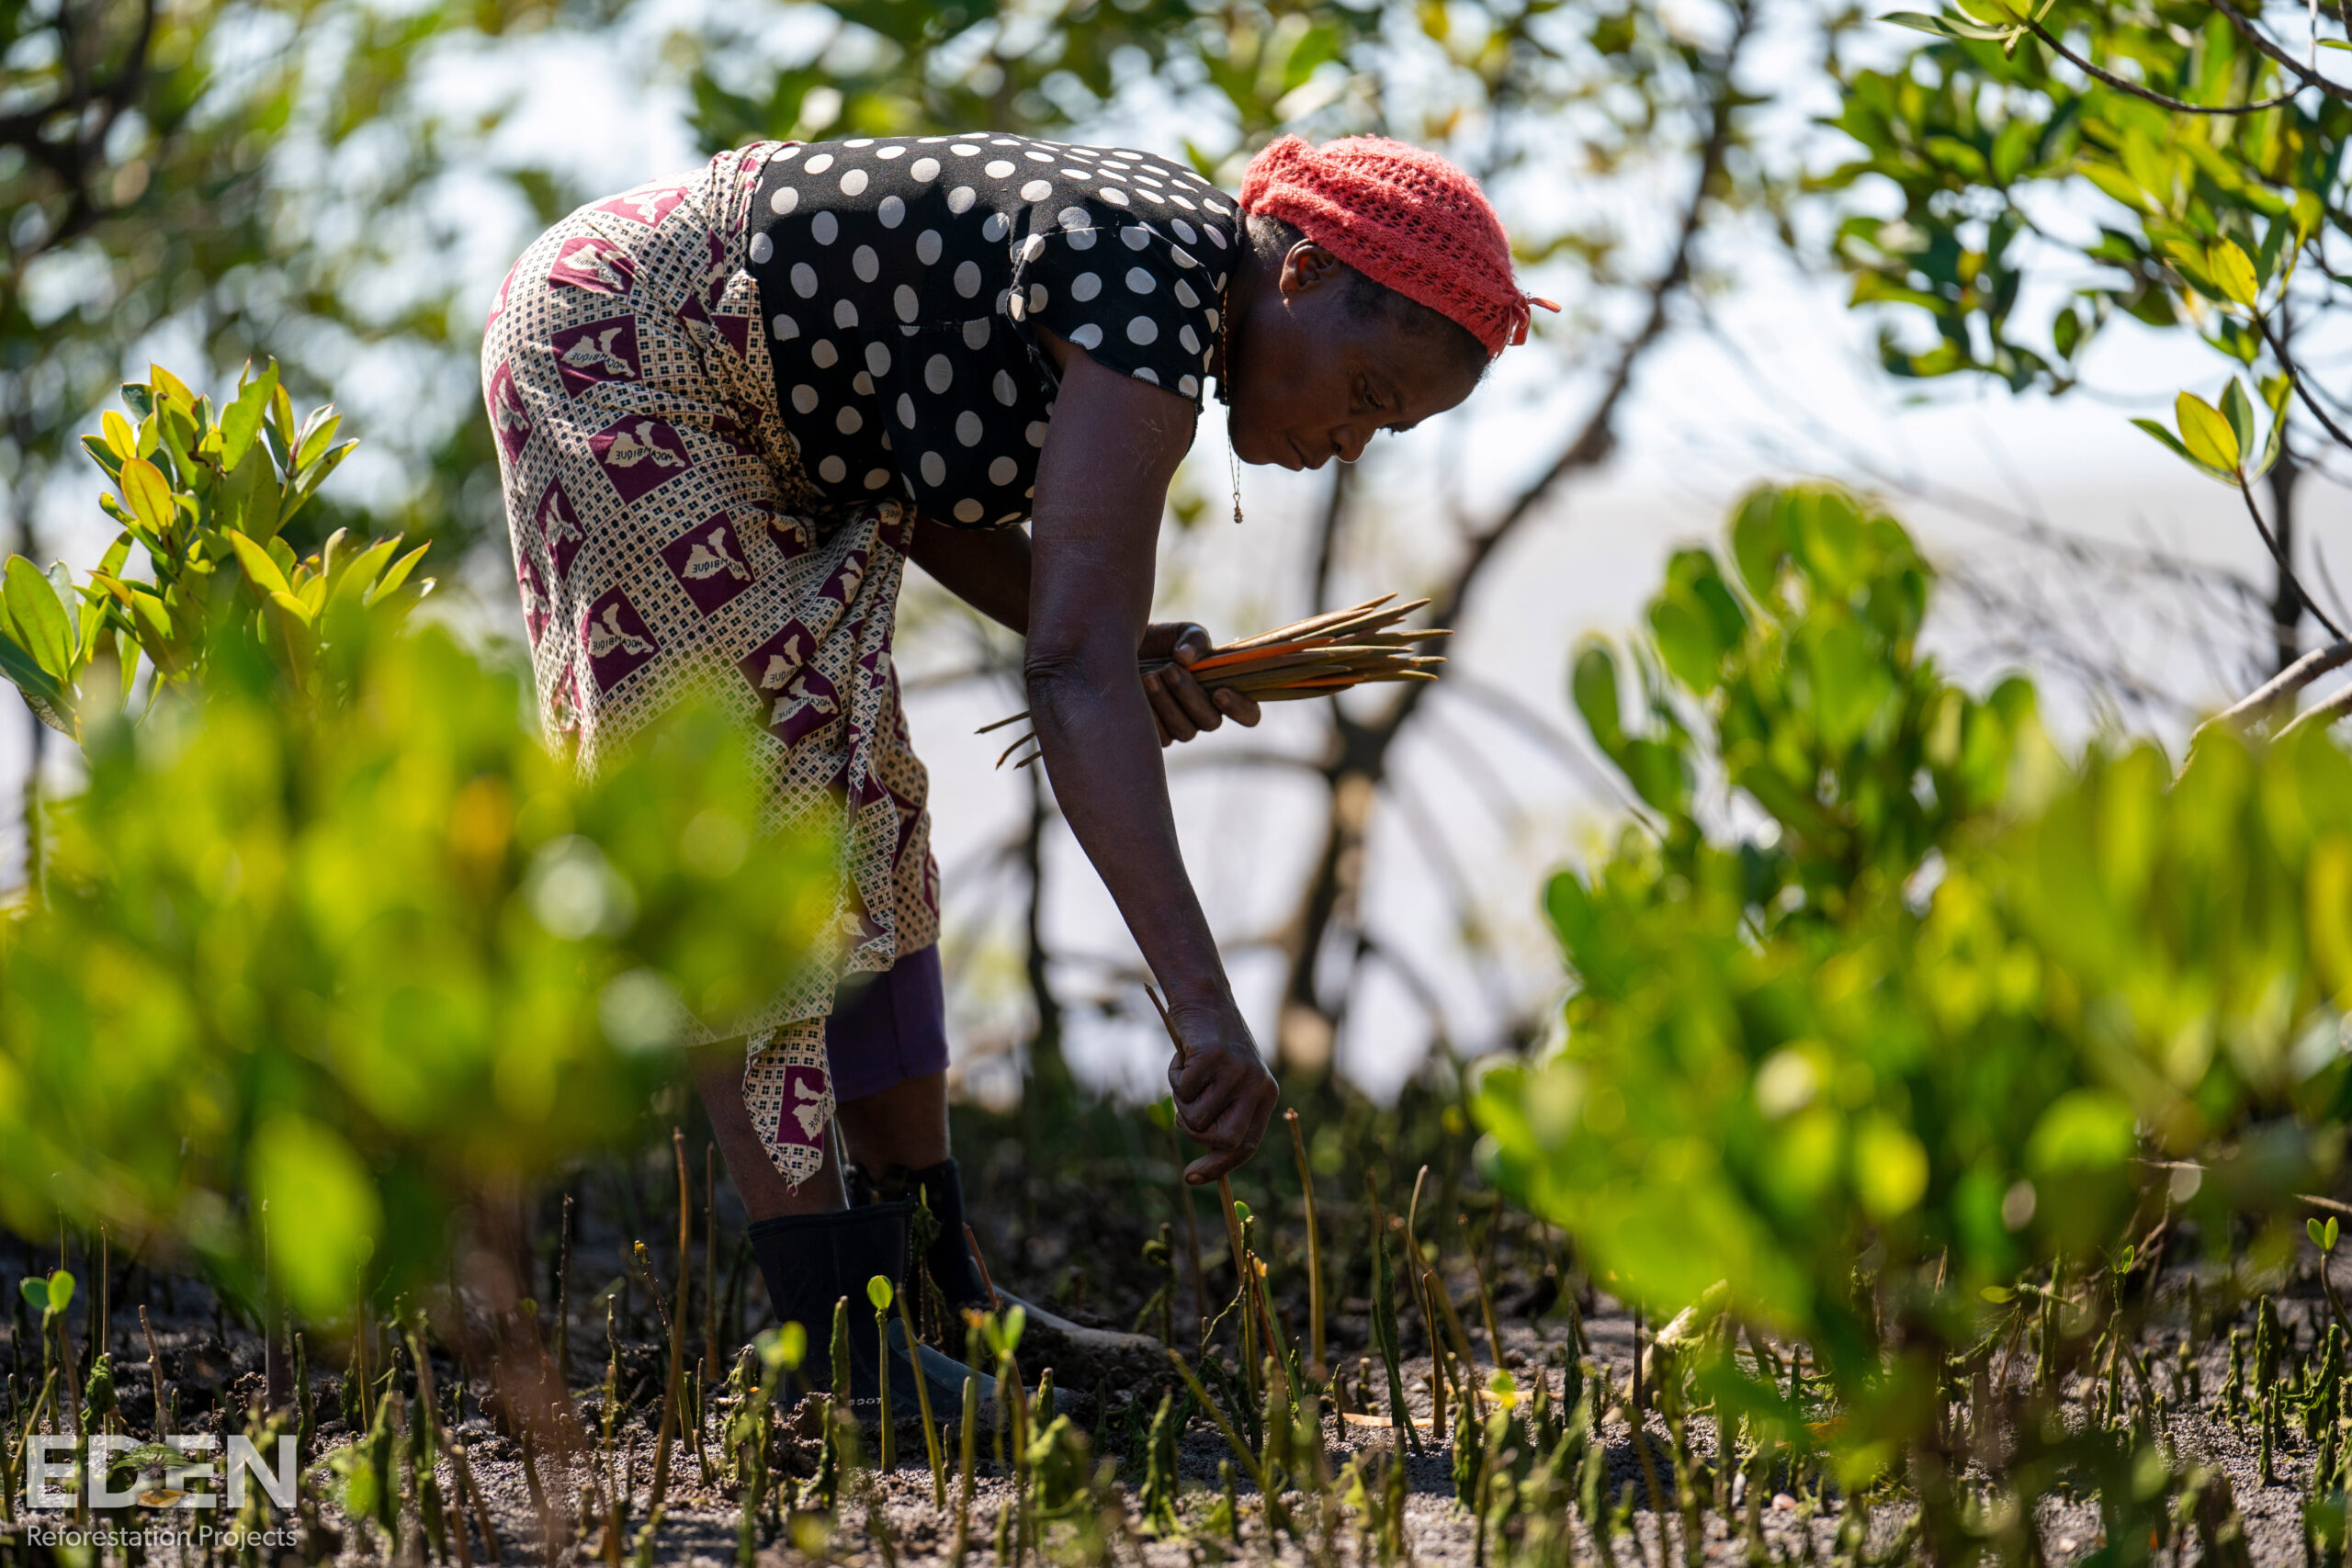 An African woman is planting a tree in Mozambique.